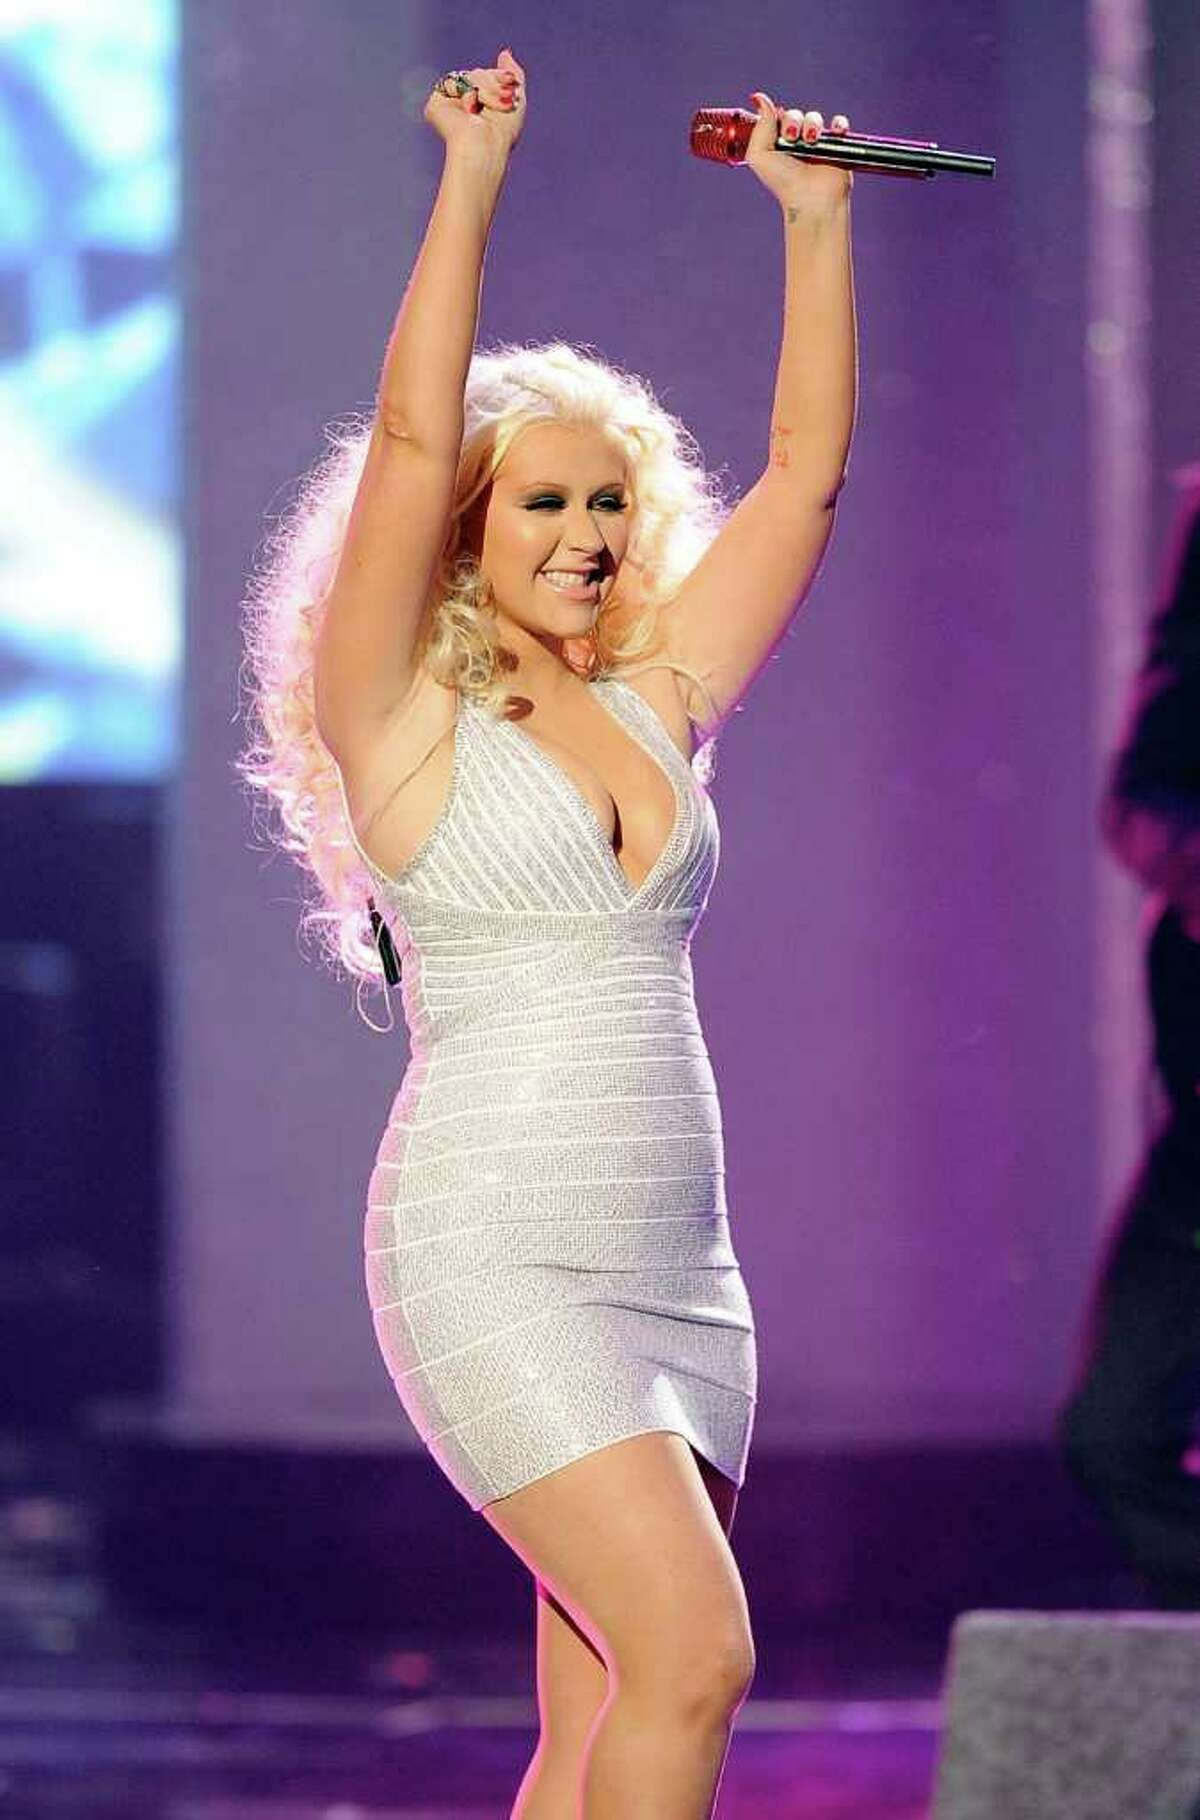 LOS ANGELES, CA - NOVEMBER 20: Singer Christina Aguilera performs onstage at the 2011 American Music Awards held at Nokia Theatre L.A. LIVE on November 20, 2011 in Los Angeles, California.